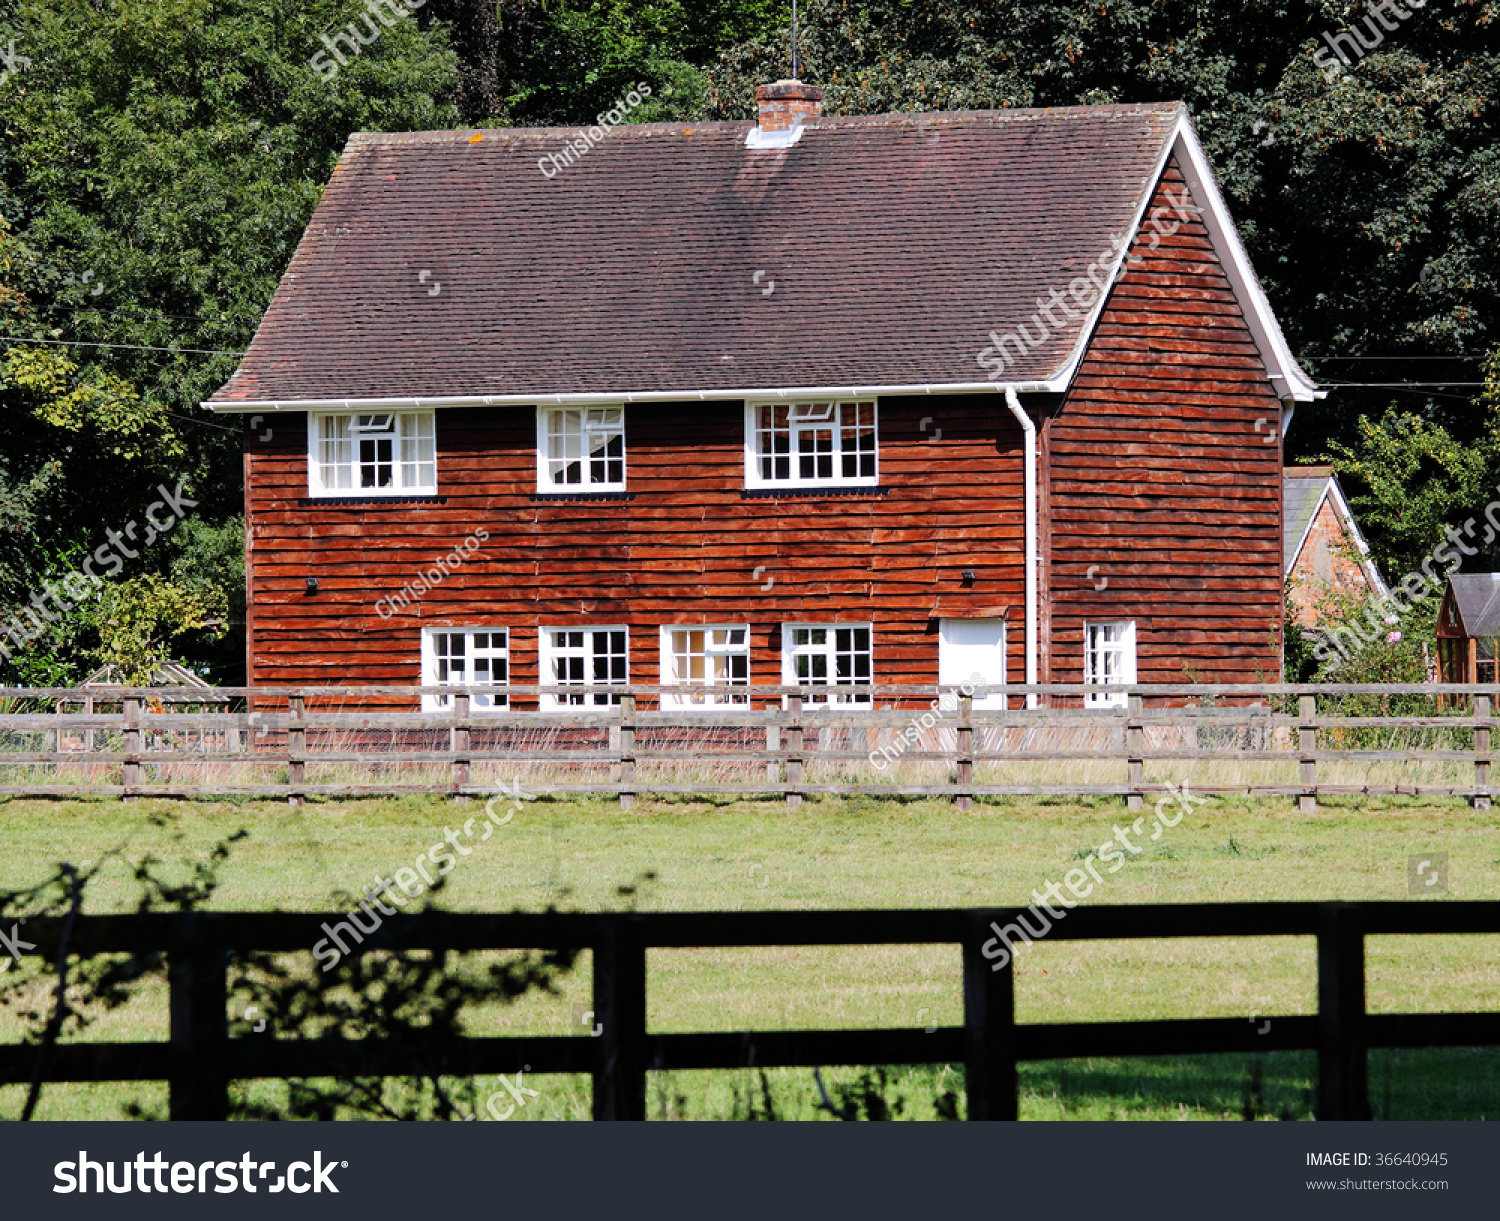 Traditional english timber clad rural house stock photo 36640945 shutterstock - The shutter clad house ...